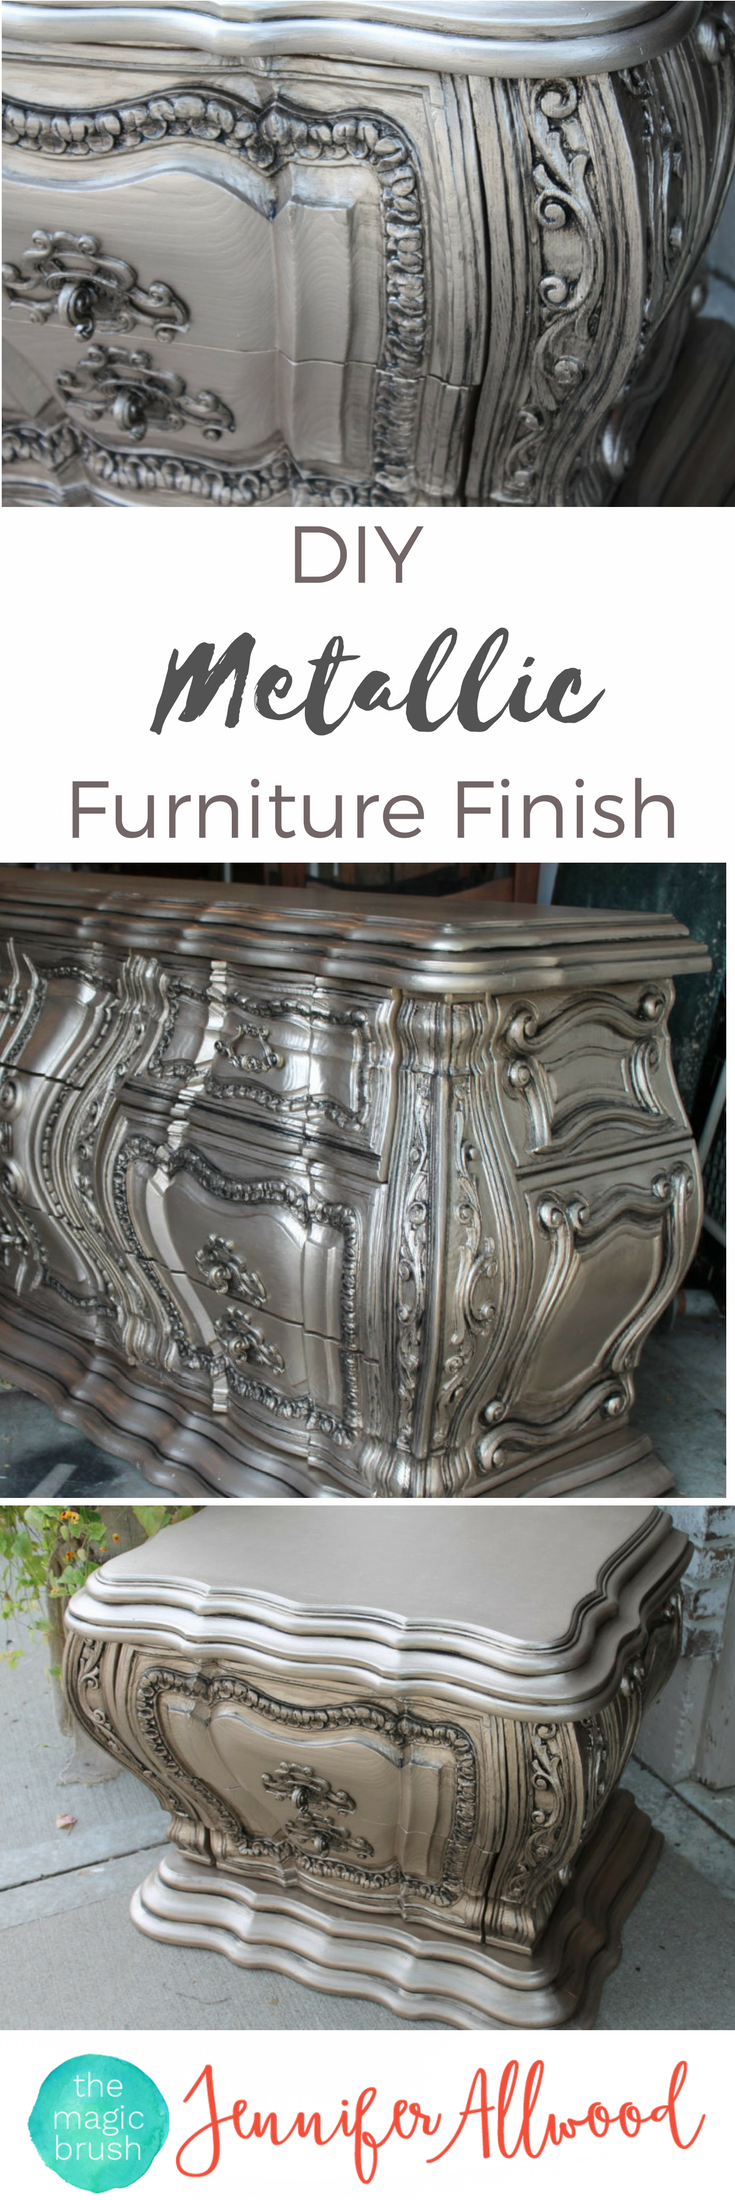 silver furniture  my most talked about finish  metallic  - how to paint metallic furniture this is a gorgeous diy silver furniturefinish that looks